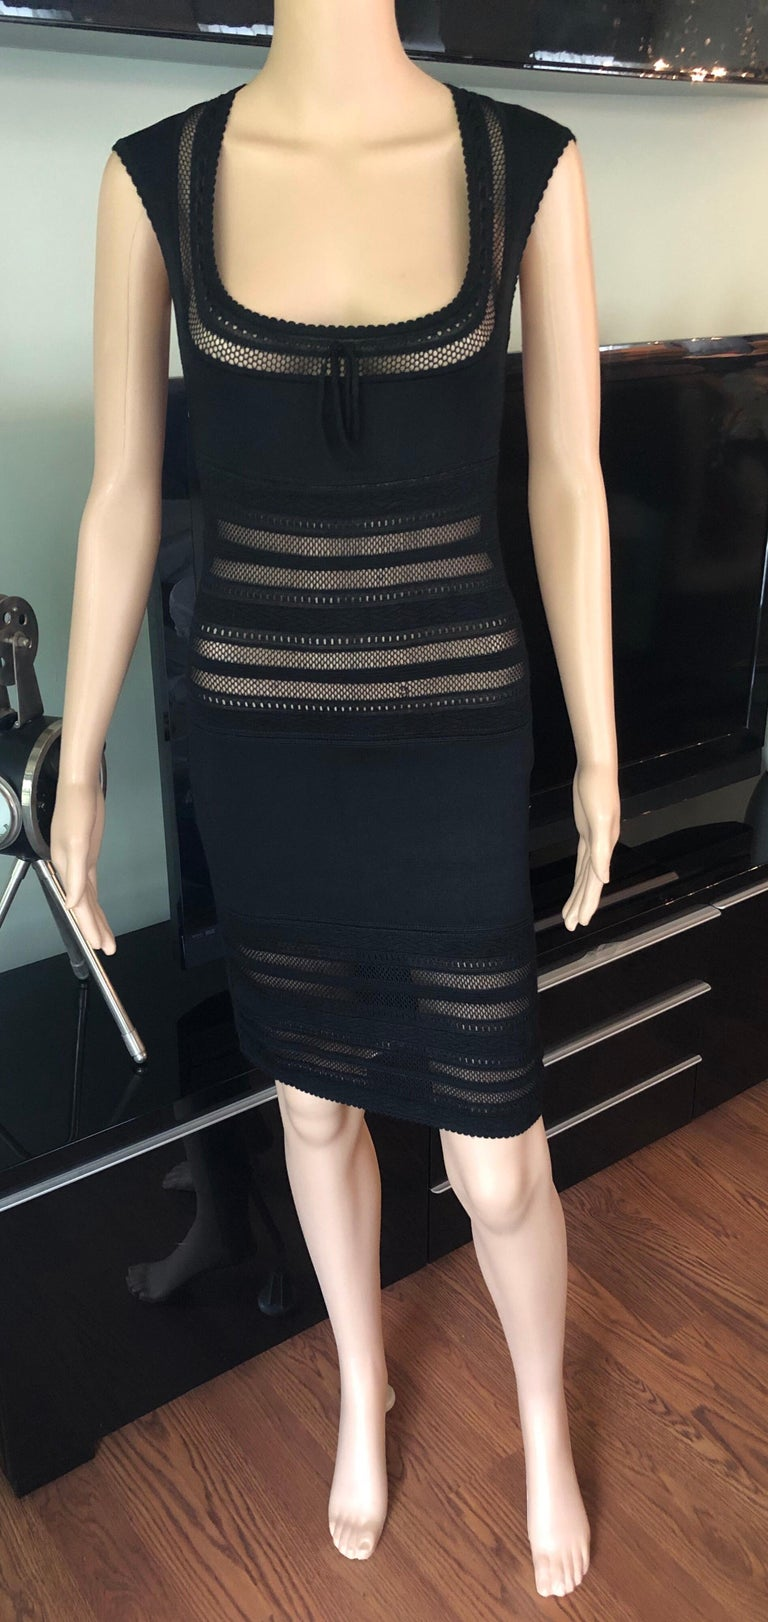 Azzedine Alaia 1990's Vintage Fitted Semi-Sheer Bodycon Black  Dress Size XS  Alaïa sleeveless bodycon mini dress with open knit paneling throughout, scoop neck featuring tonal bow accent at collar, scalloped trim and concealed zip closure at center